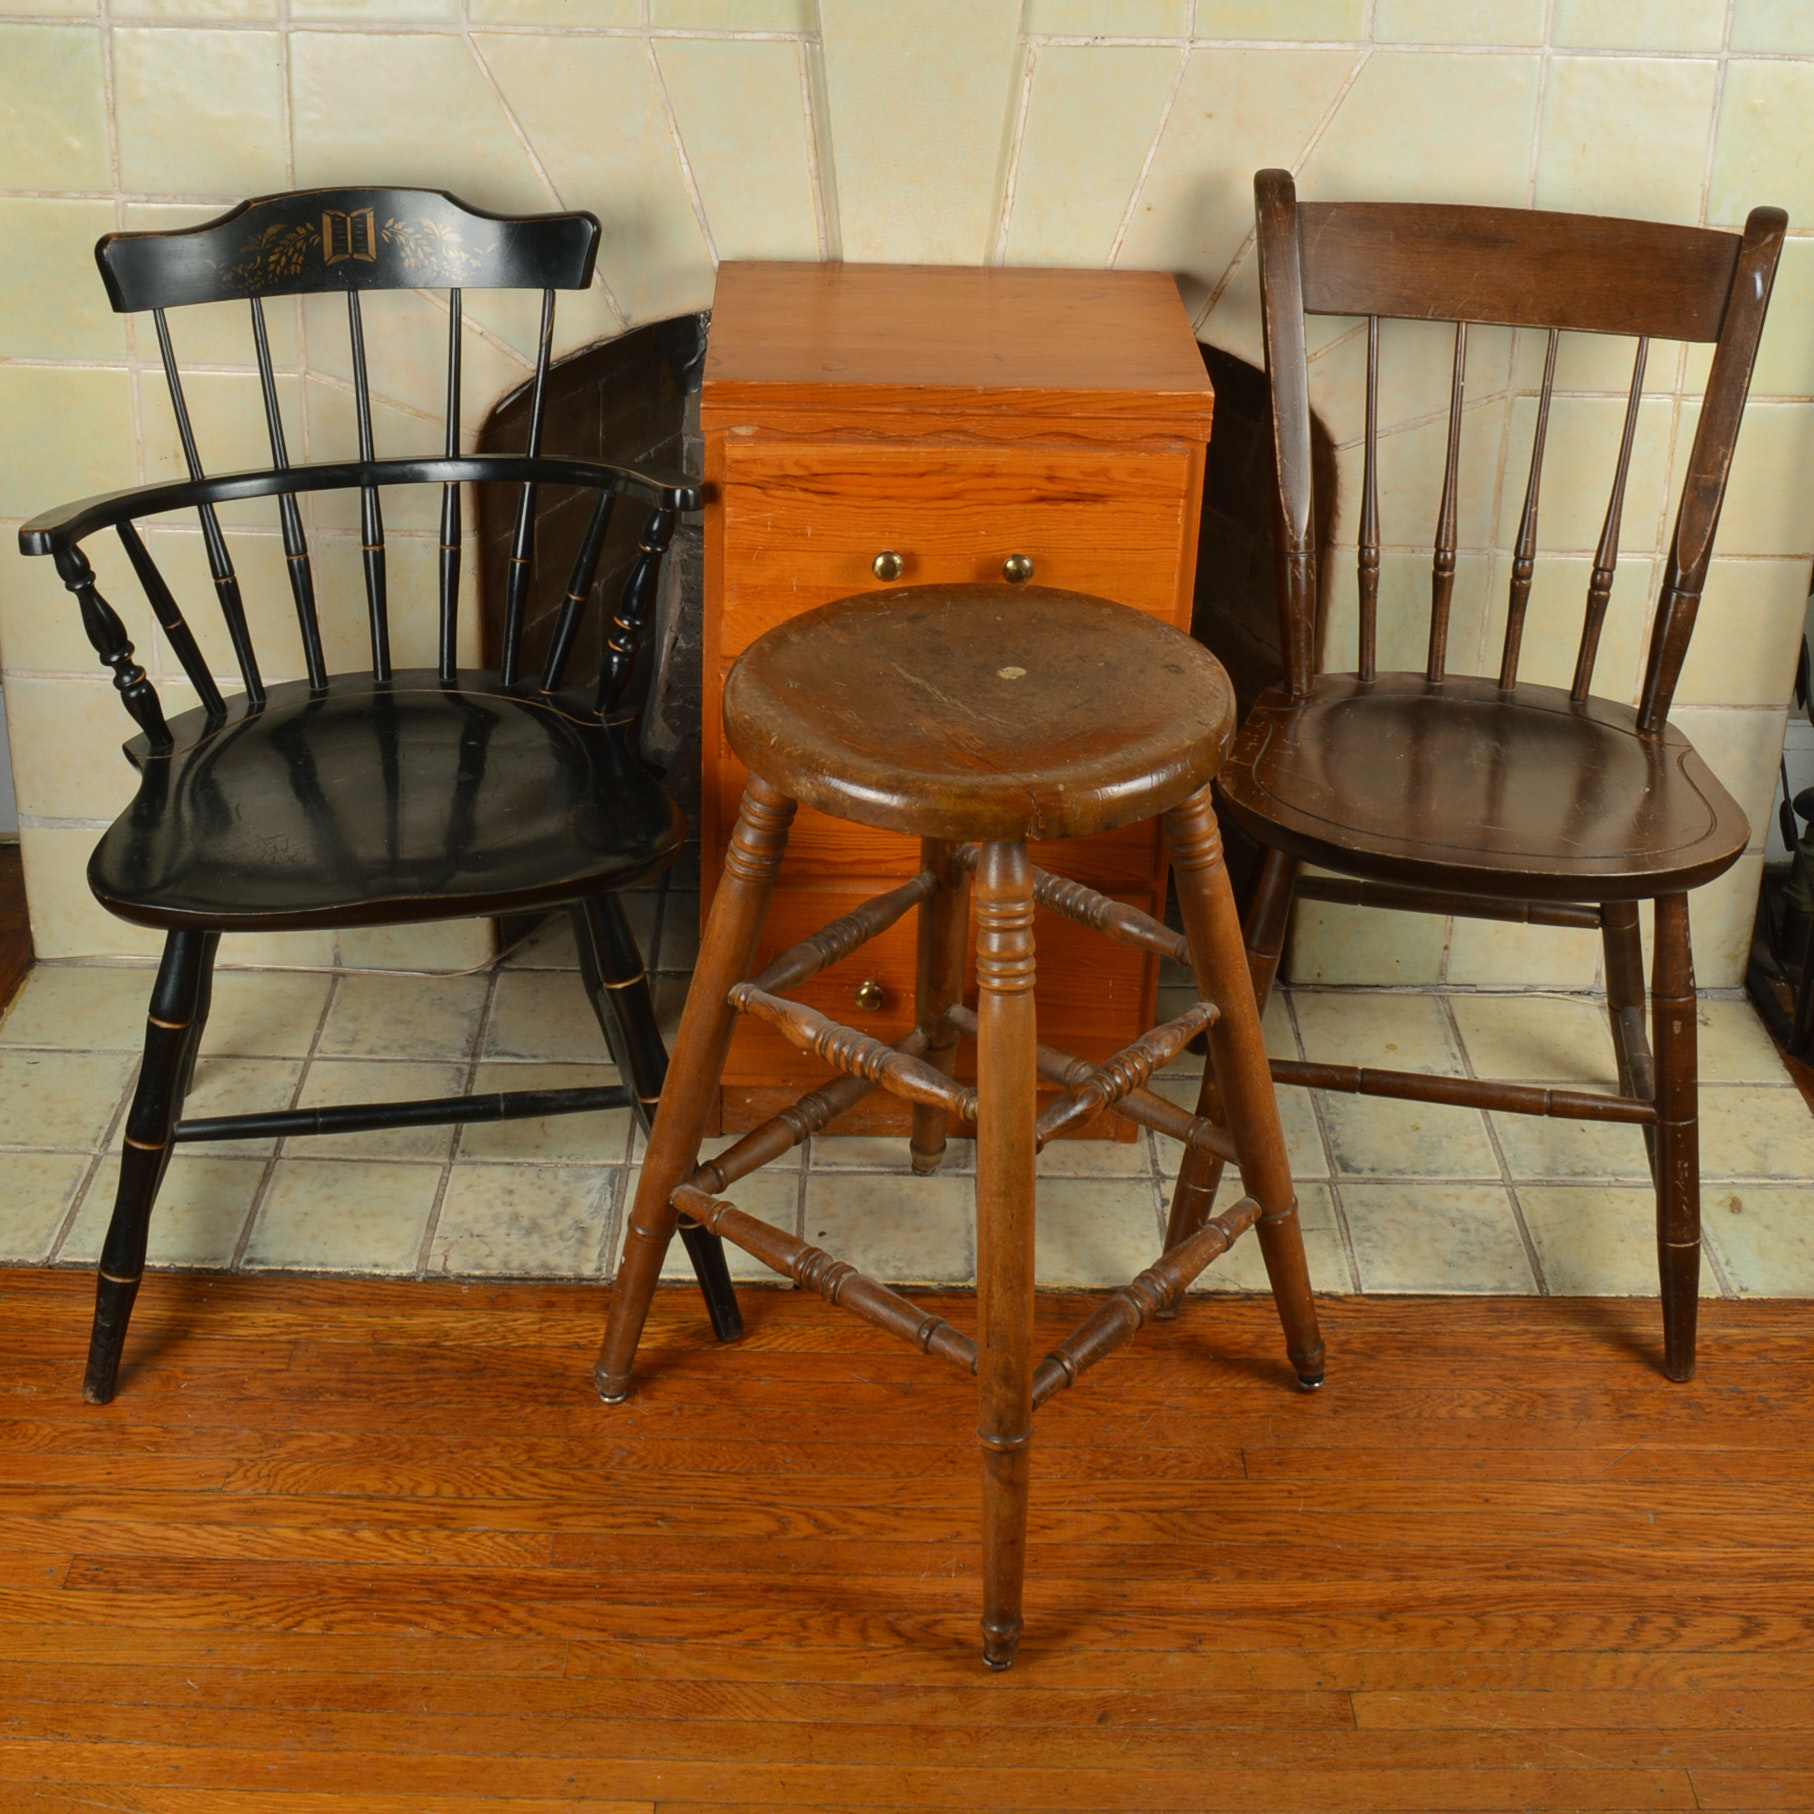 Vintage Chair and Furniture Assortment